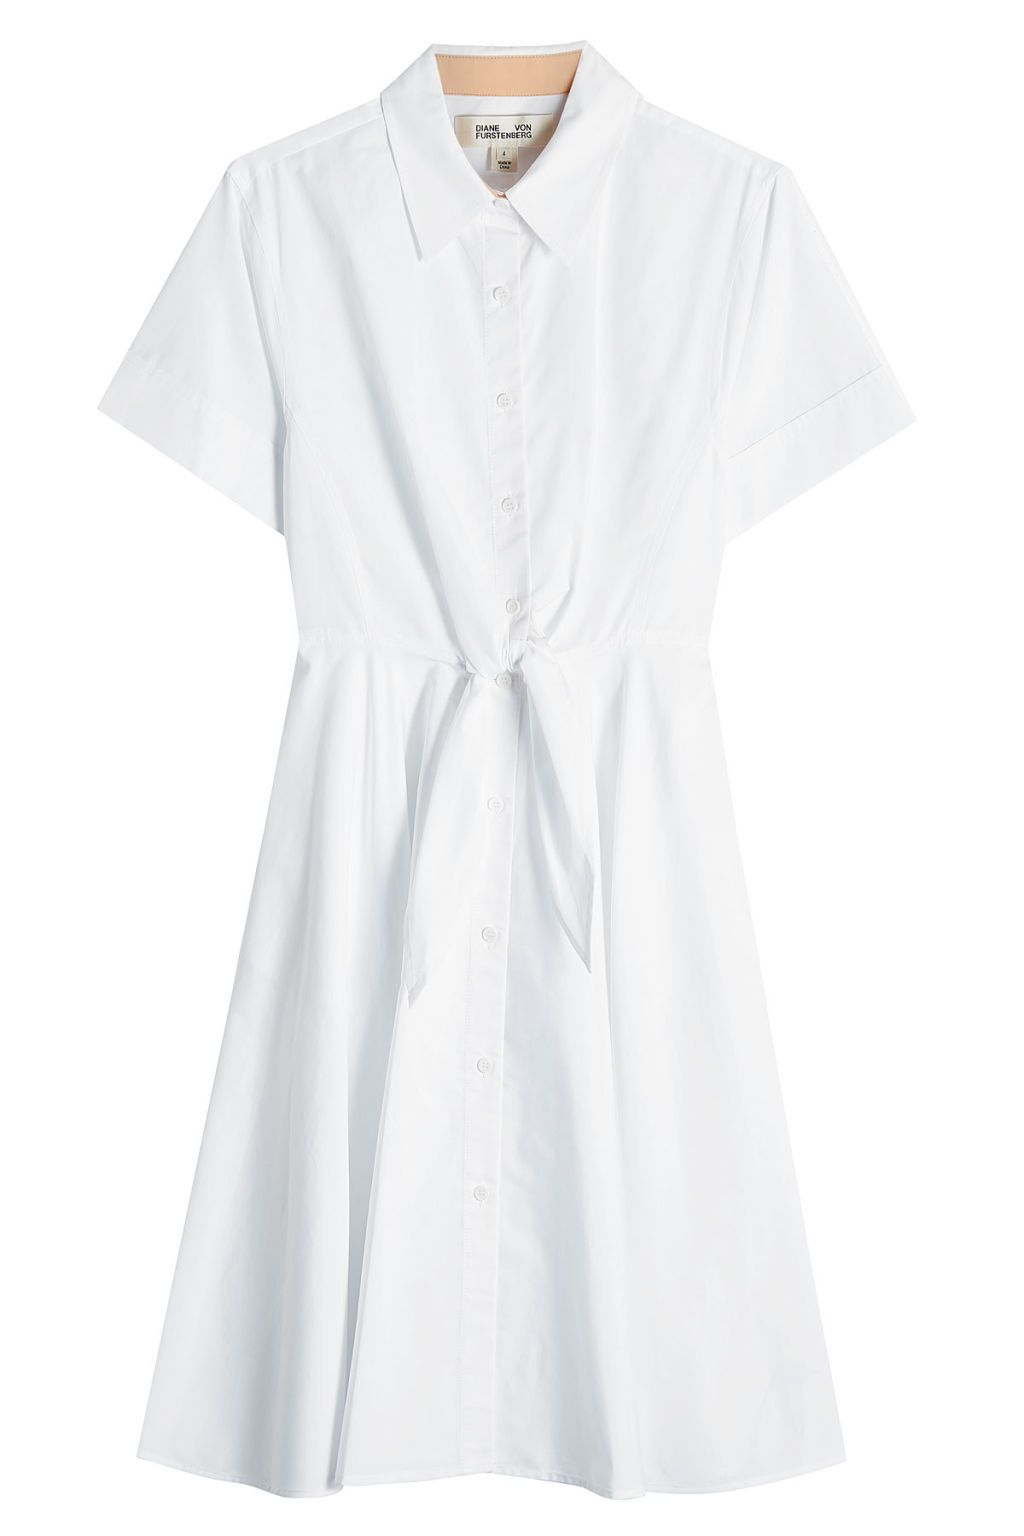 12 Shirtdresses That Will Make Your Morning Significantly Easier